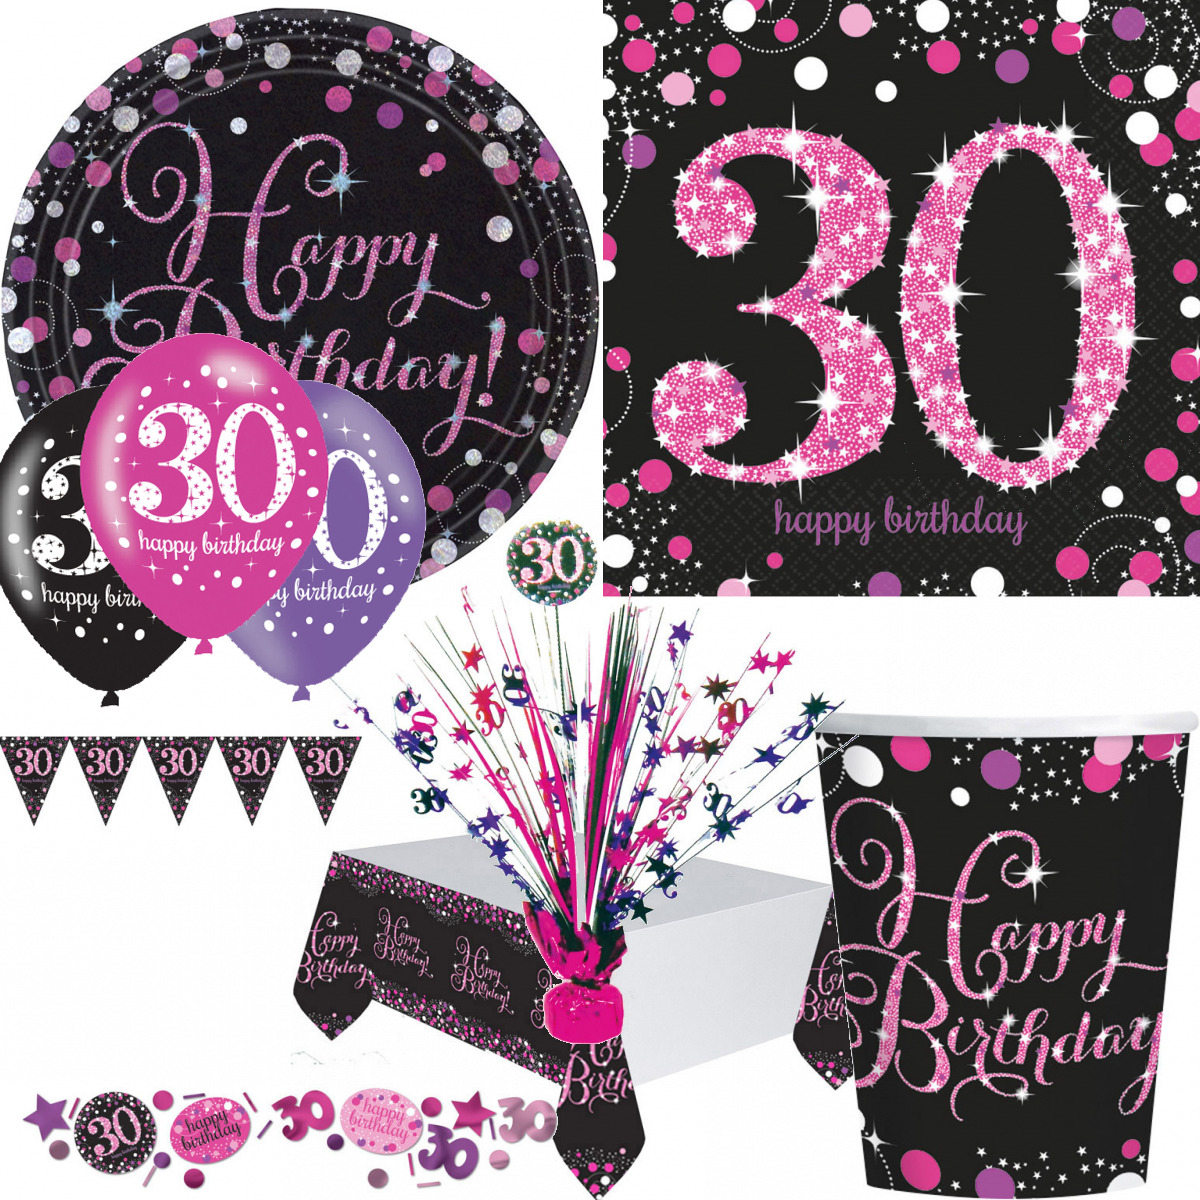 30 geburtstag dekoration mit zahl 30 deko runder geburtstag party tisch pink eur 2 60. Black Bedroom Furniture Sets. Home Design Ideas